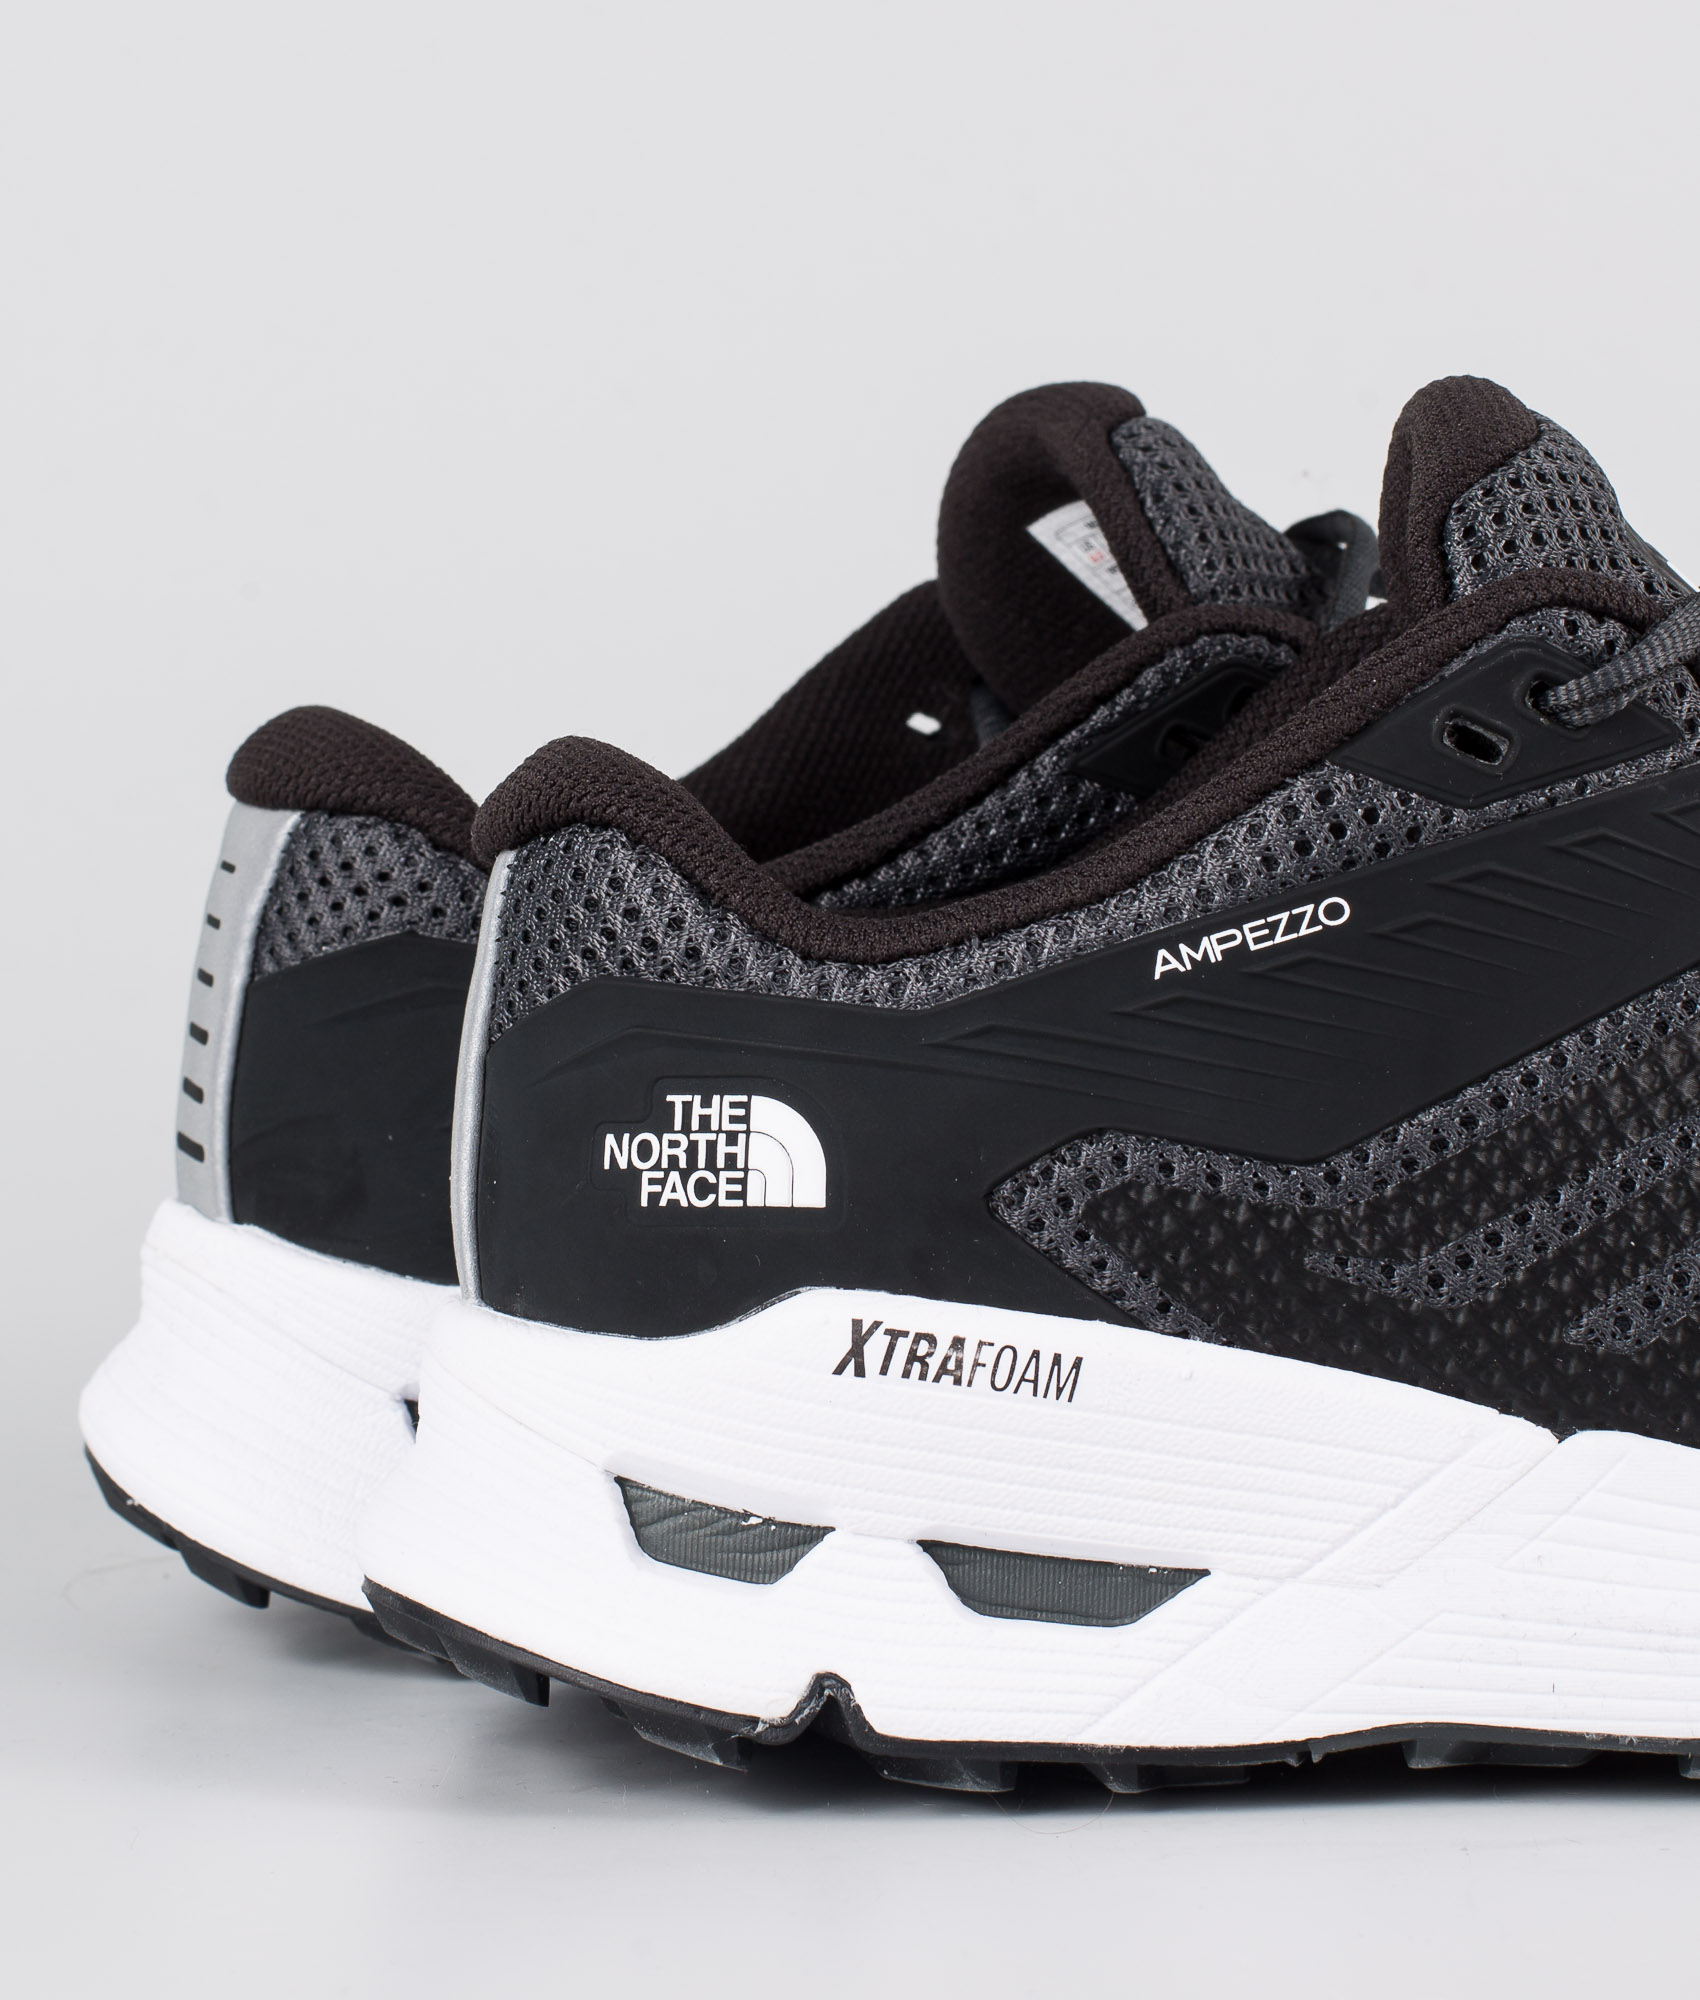 The North Face Ampezzo Shoes Darkshadow